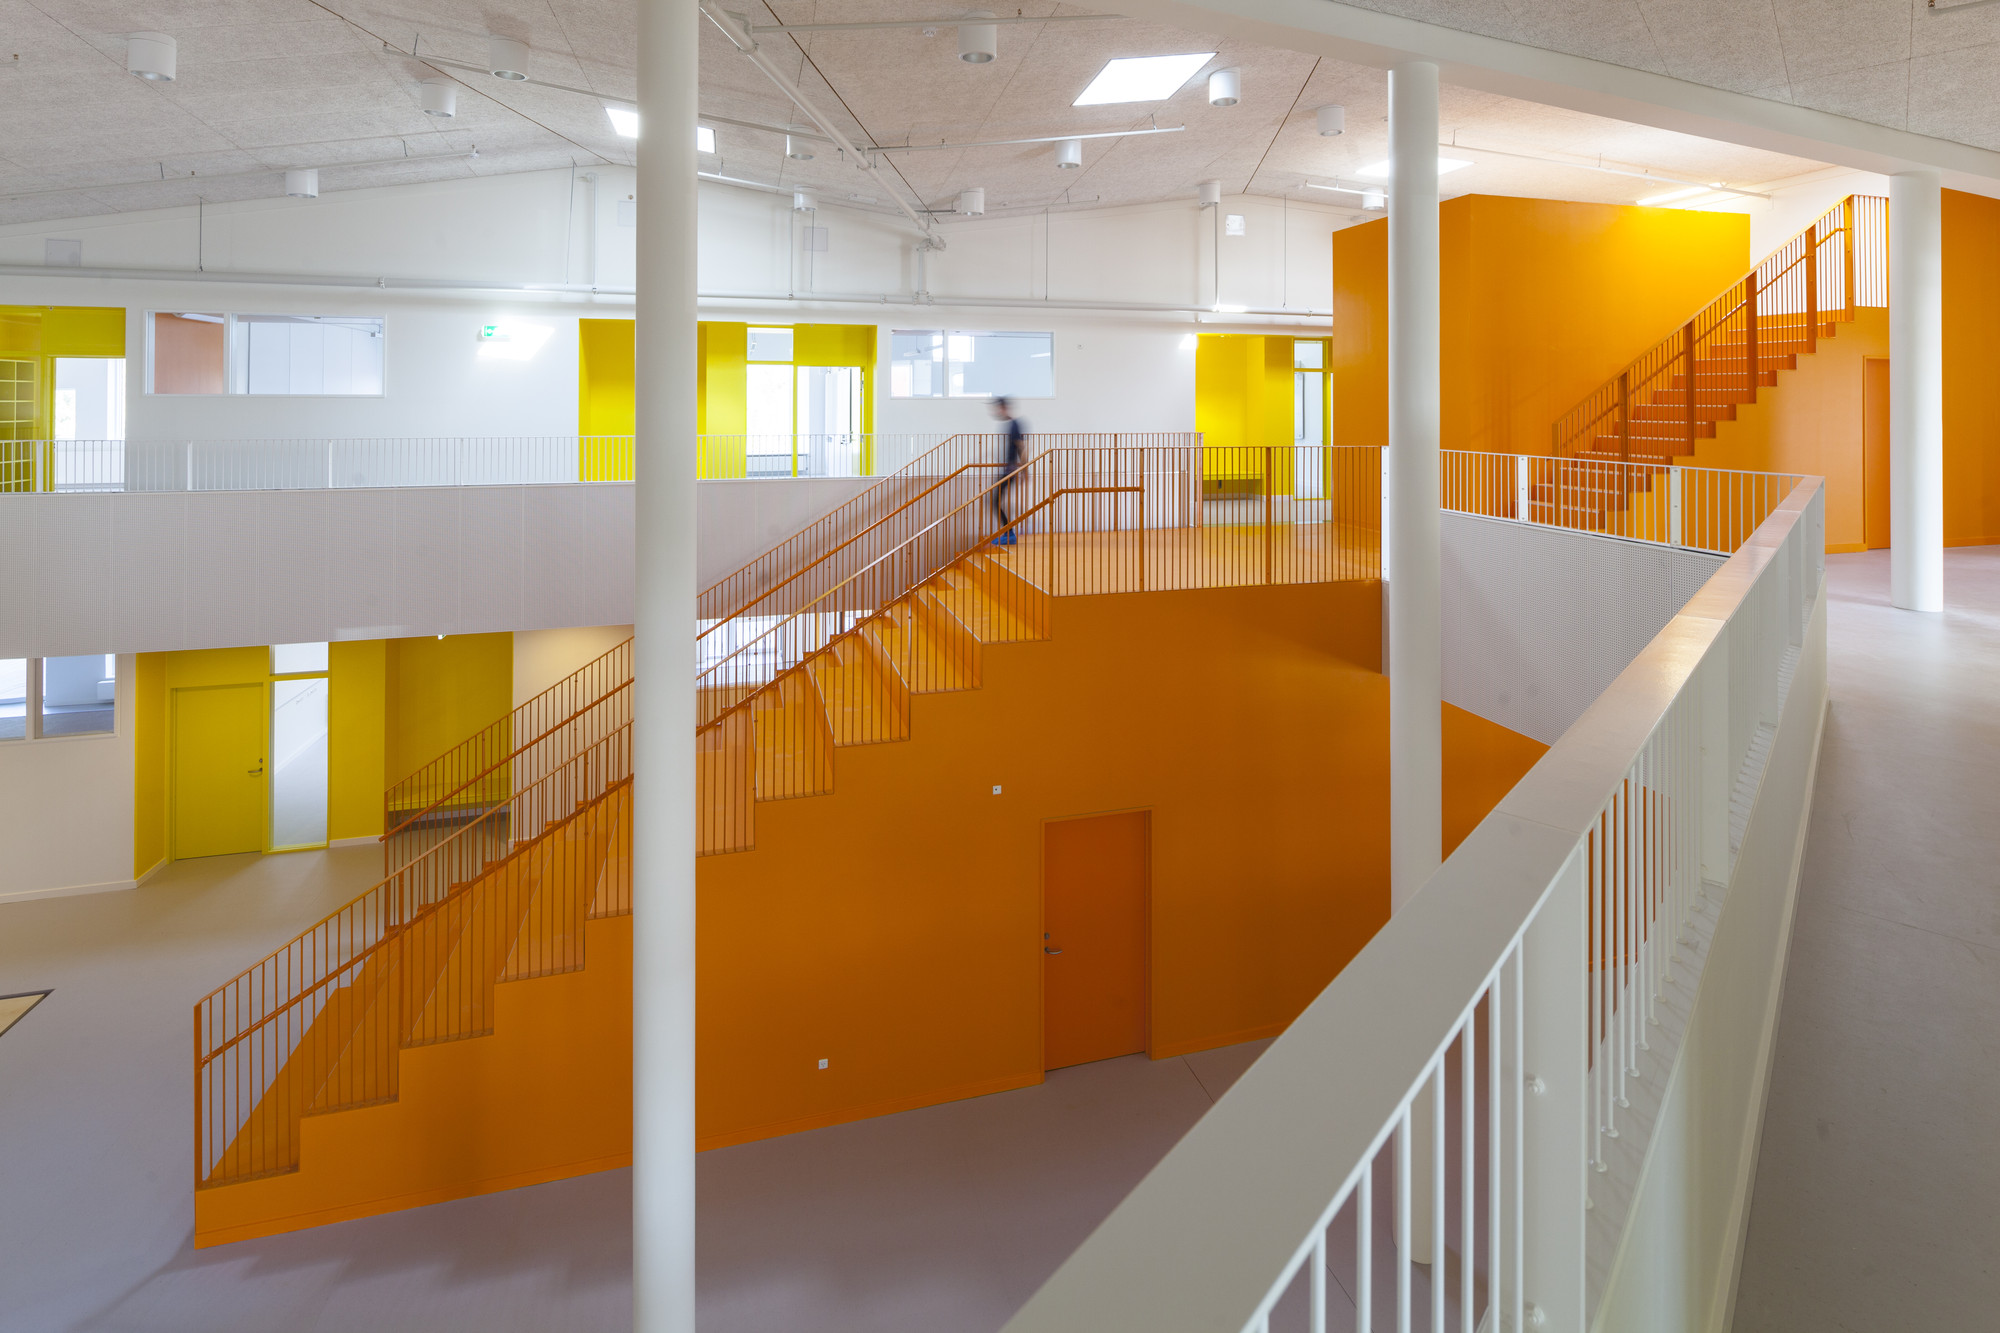 Interieur Geluk Gallery Of The Vibeeng School Arkitema Architects 3